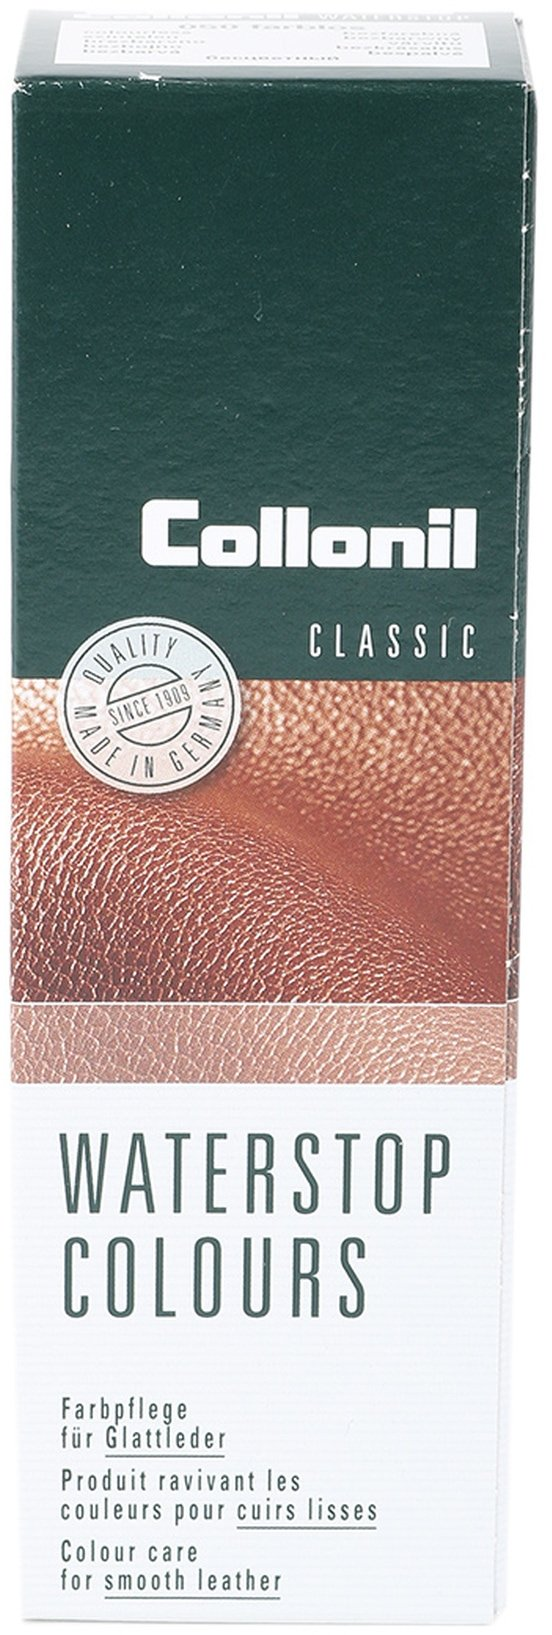 Collonil Waterstop Leather Cream Colourless foto 0